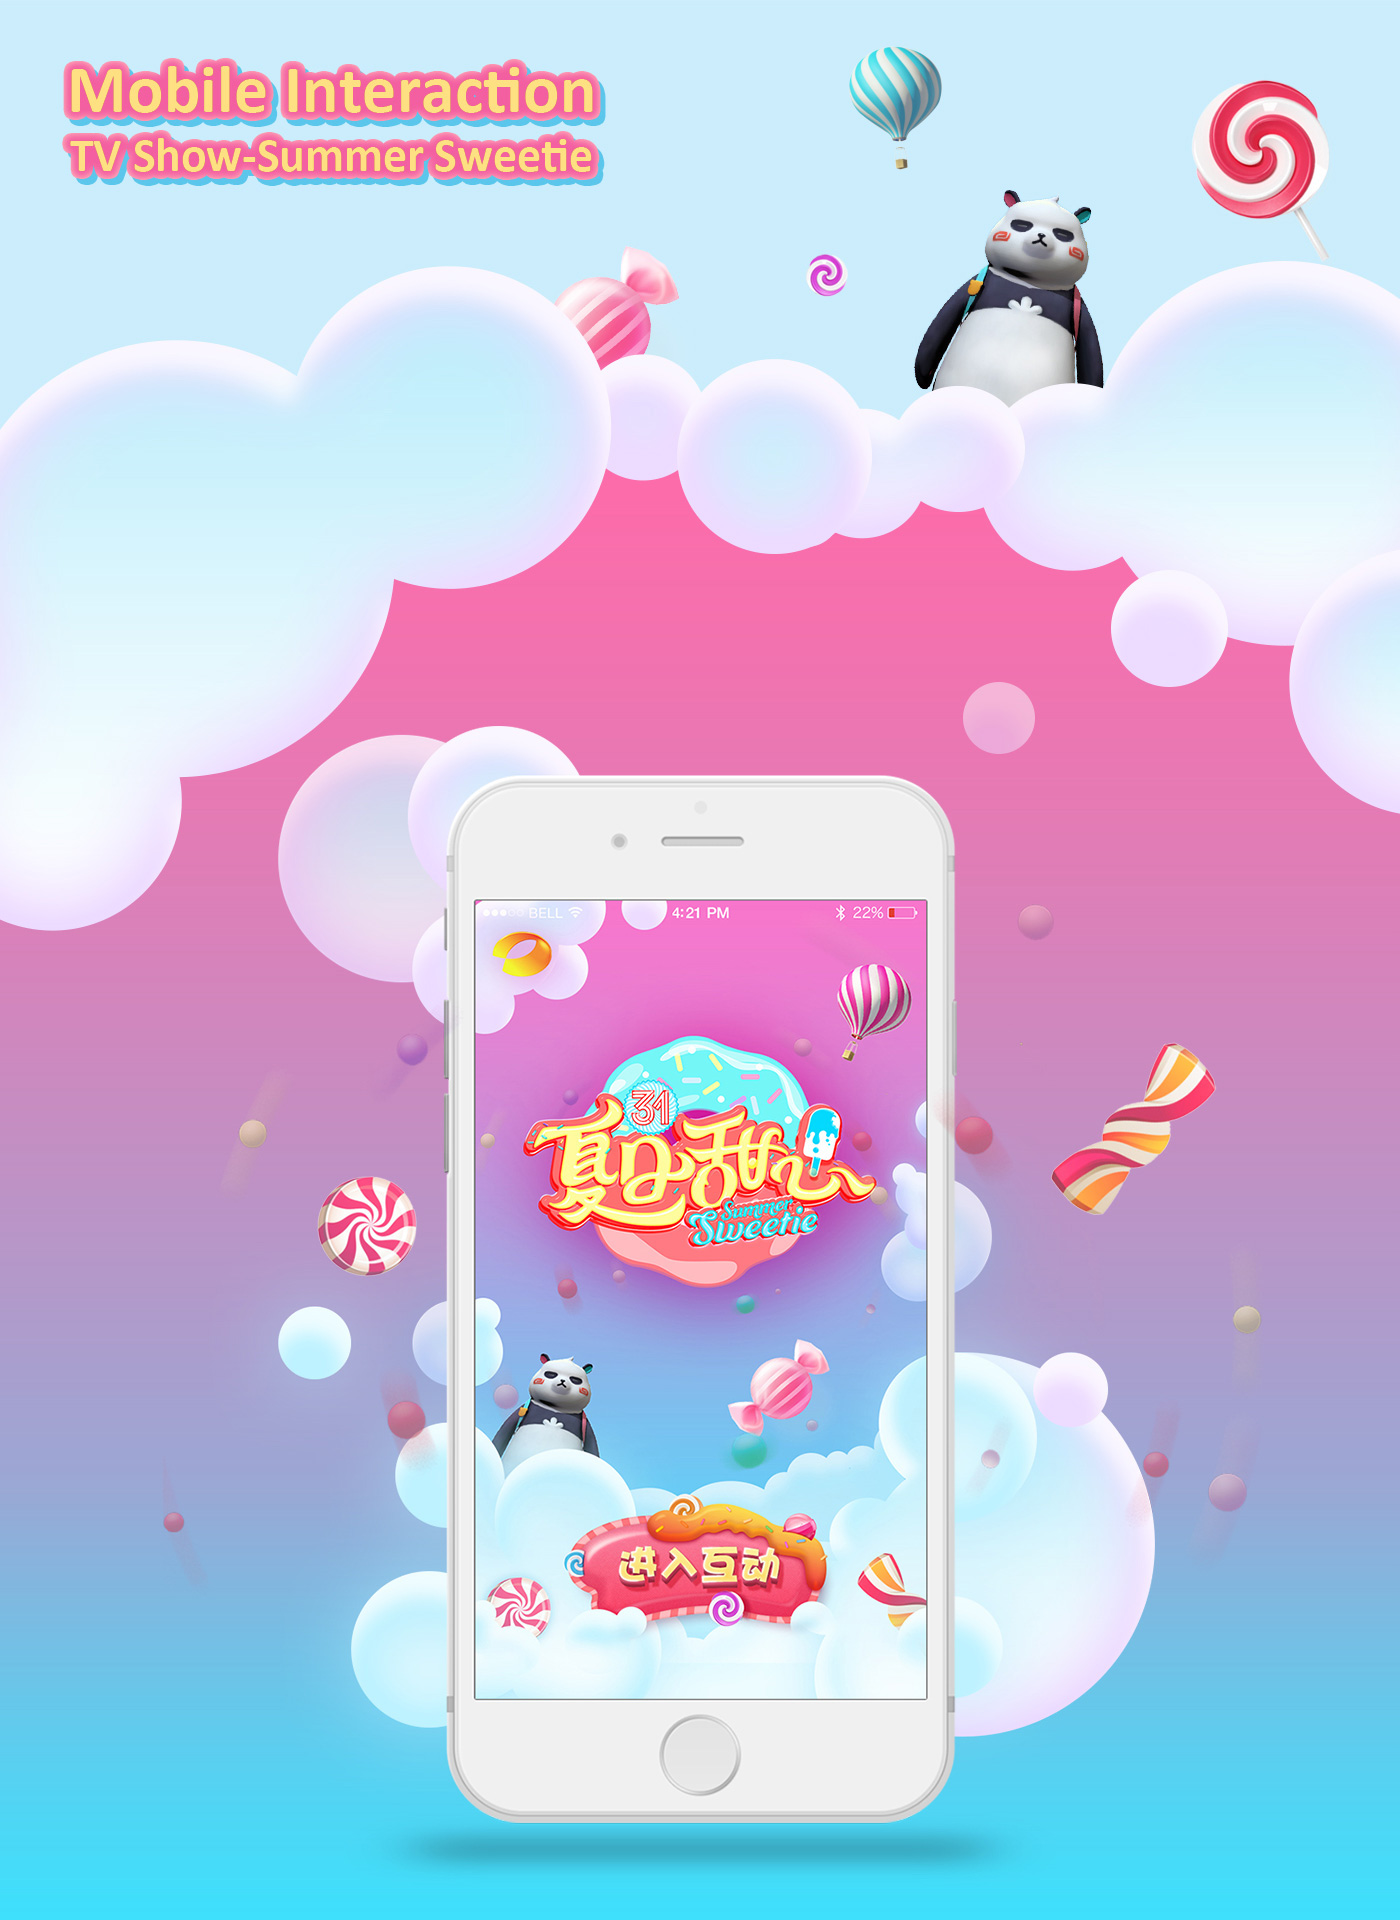 TV Show-Summer Sweetie UI Design on Behance